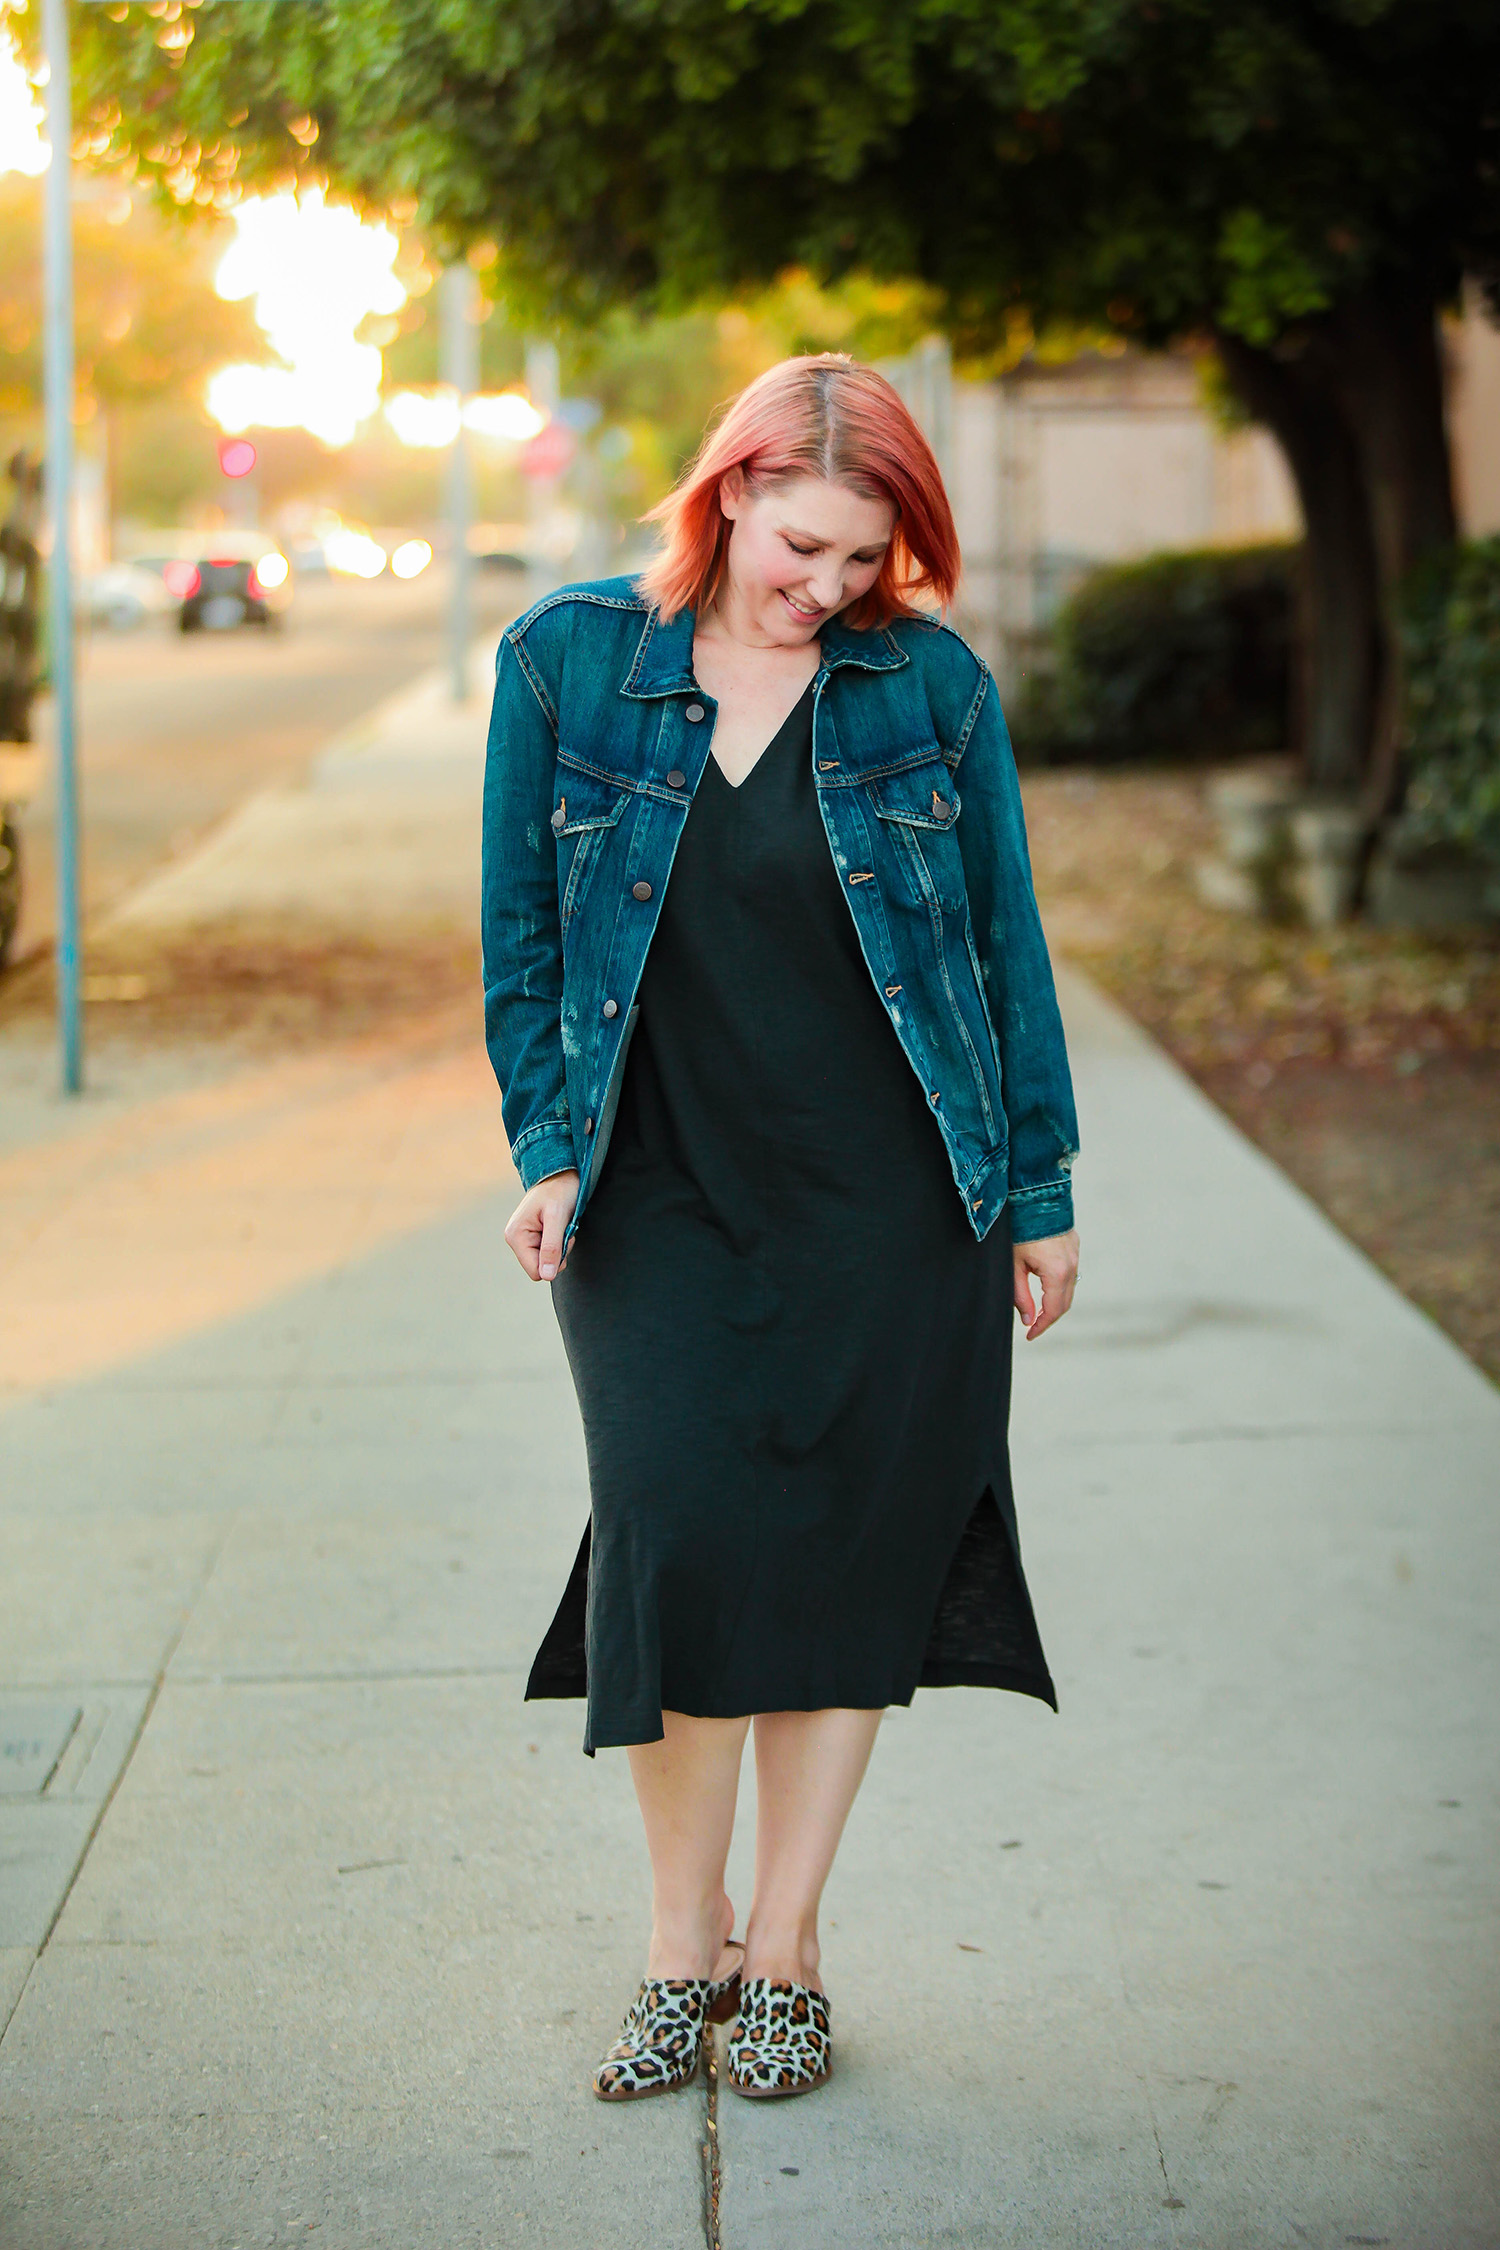 Classic Jean Jacket: Out of all the t shirt dress outfit ideas I've seen lately, this is the most wearable! I love the simple jacket and mule shoes!